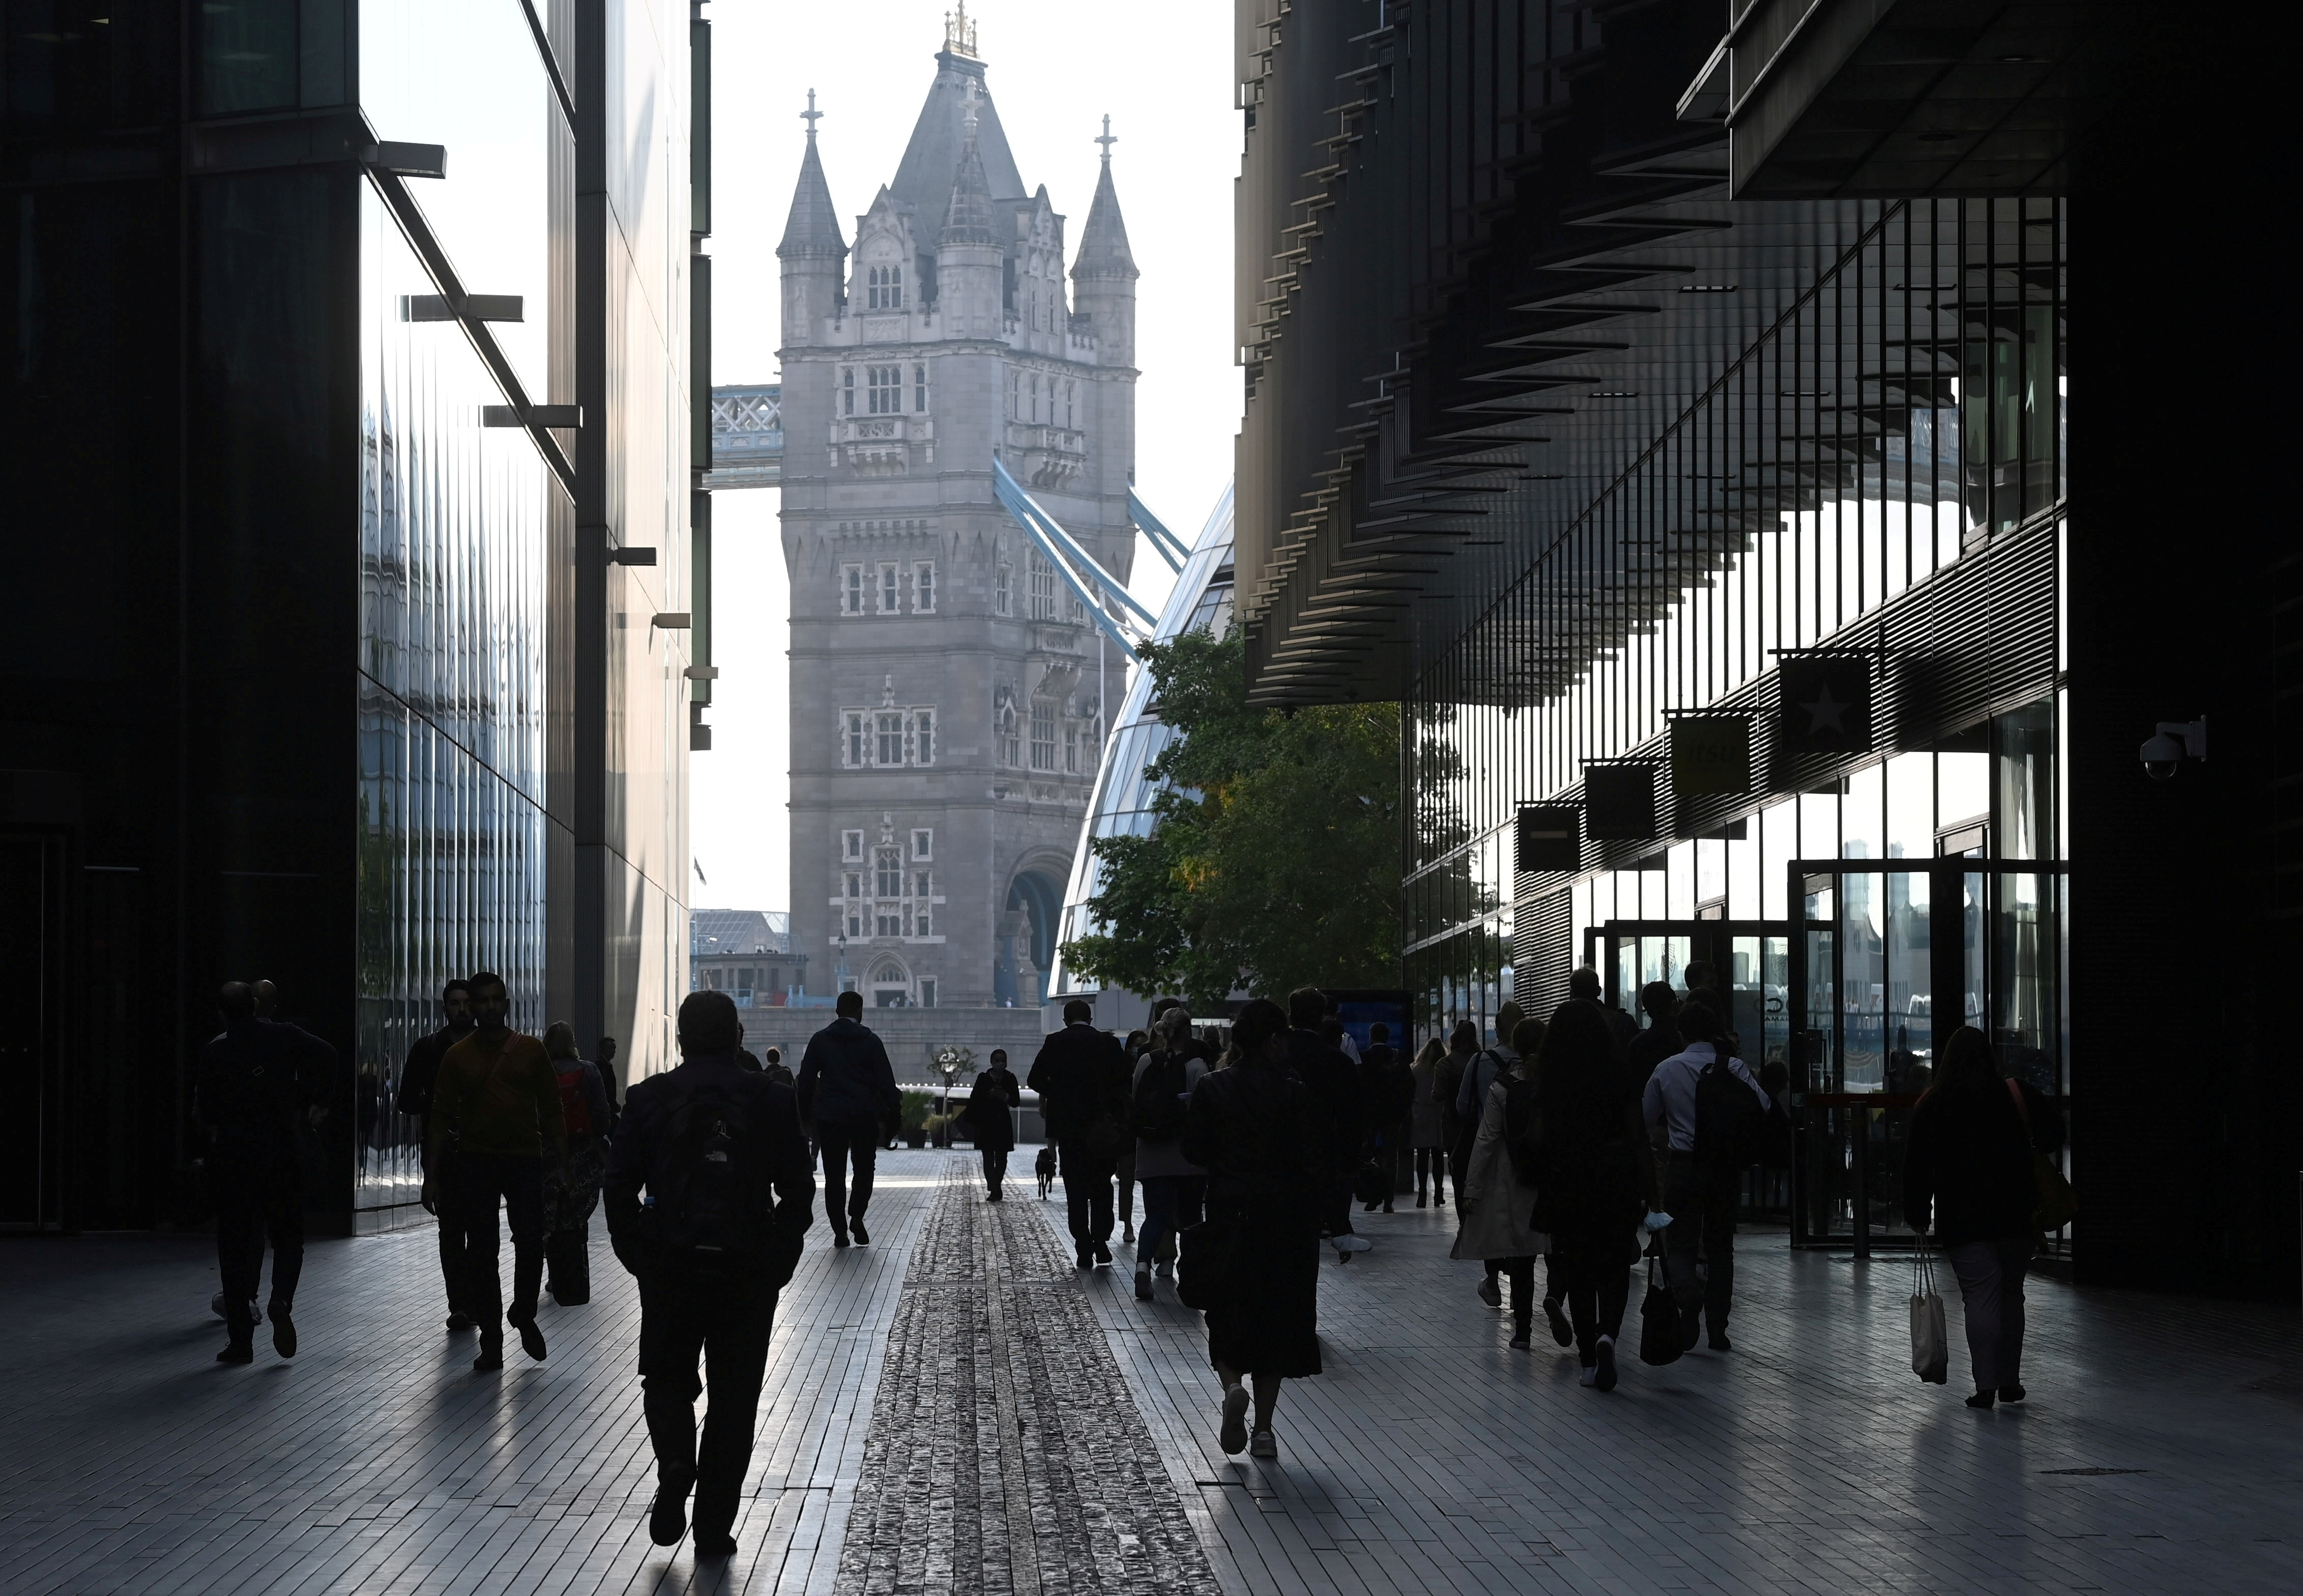 Workers walk towards Tower Bridge during the morning rush hour, amid a relaxation of lockdown restrictions during the coronavirus disease (COVID-19) pandemic in London, Britain, September 15, 2021. REUTERS/Toby Melville